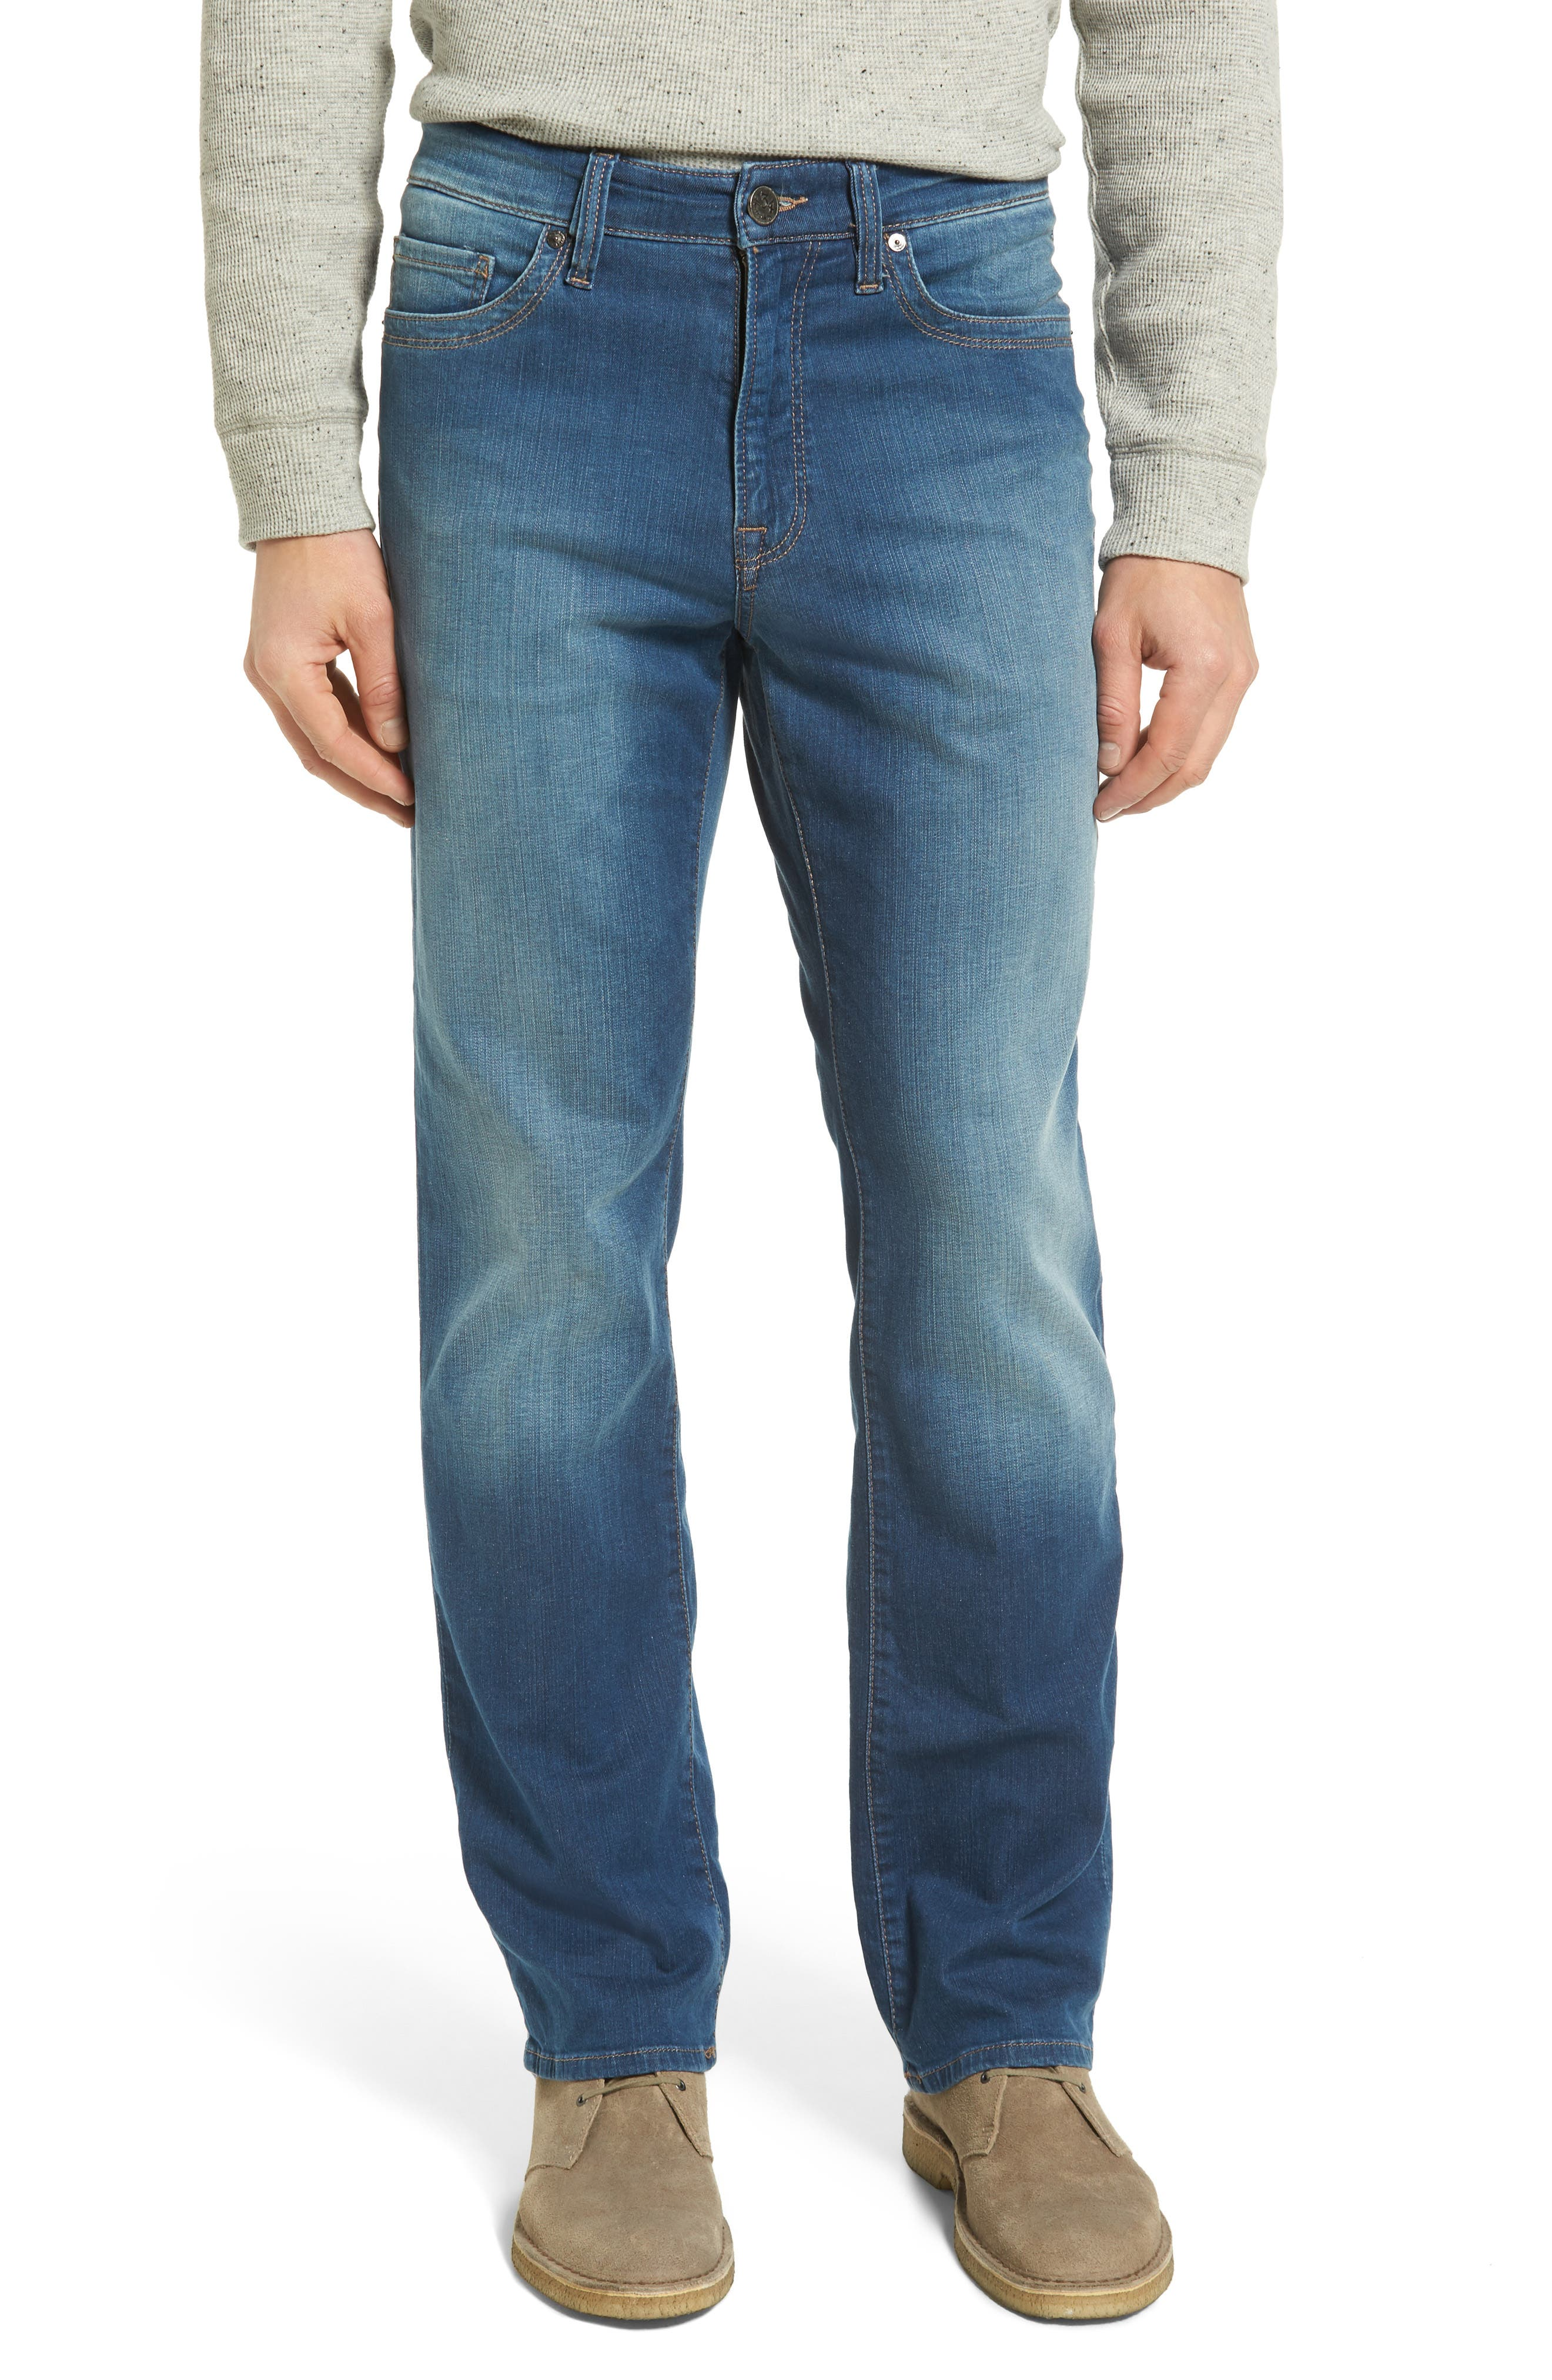 34 HERITAGE 'Charisma' Classic Relaxed Fit Jeans